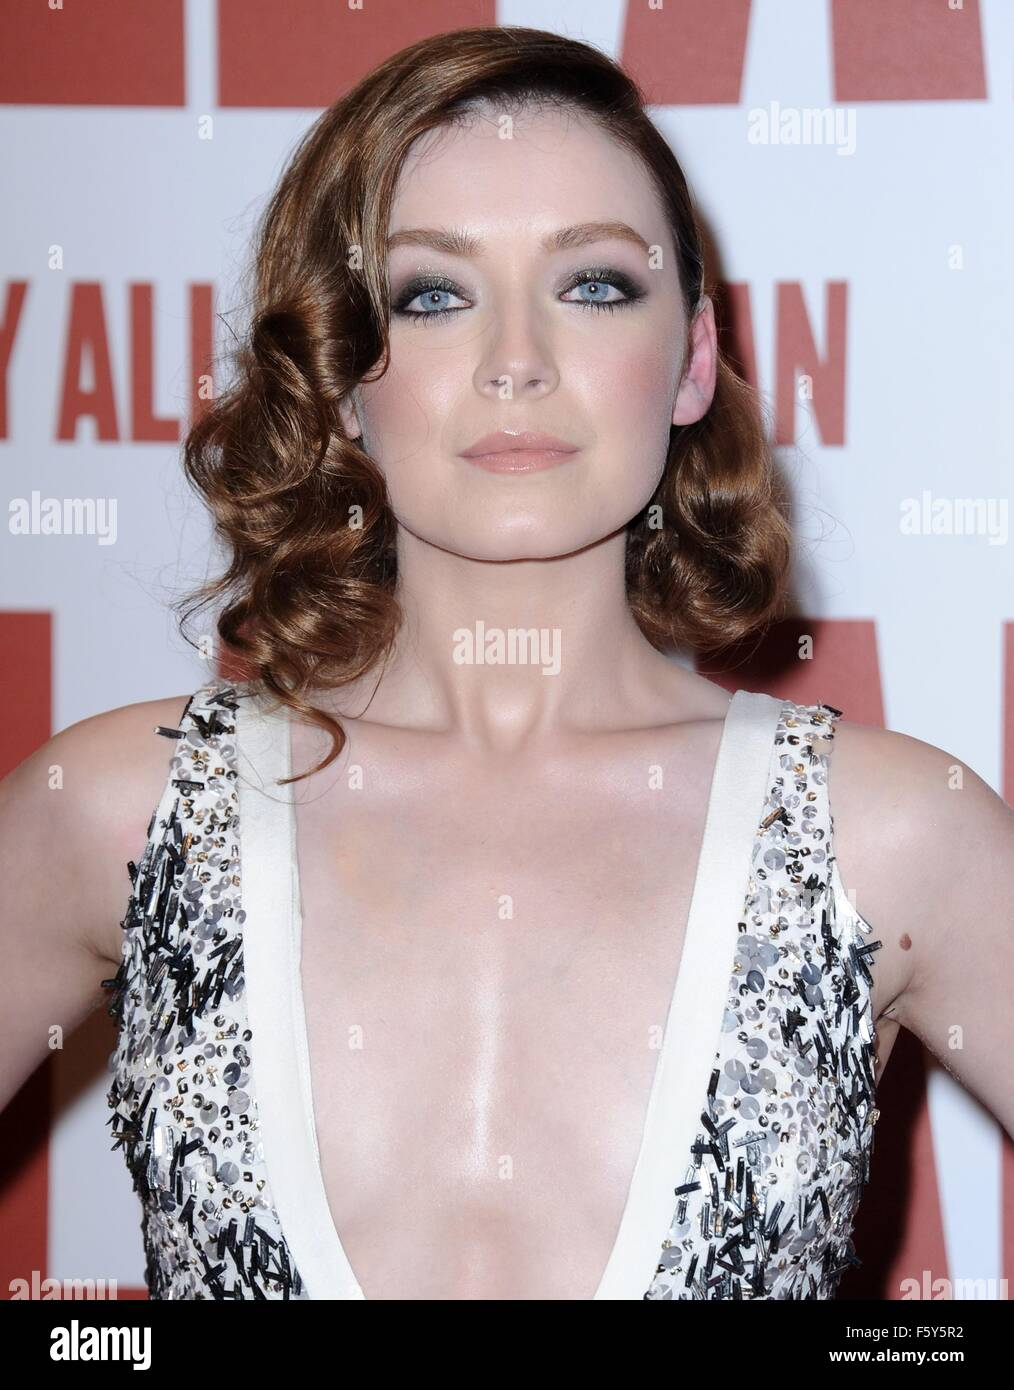 Sarah Bolger nudes (88 pictures), fotos Tits, Twitter, cameltoe 2019